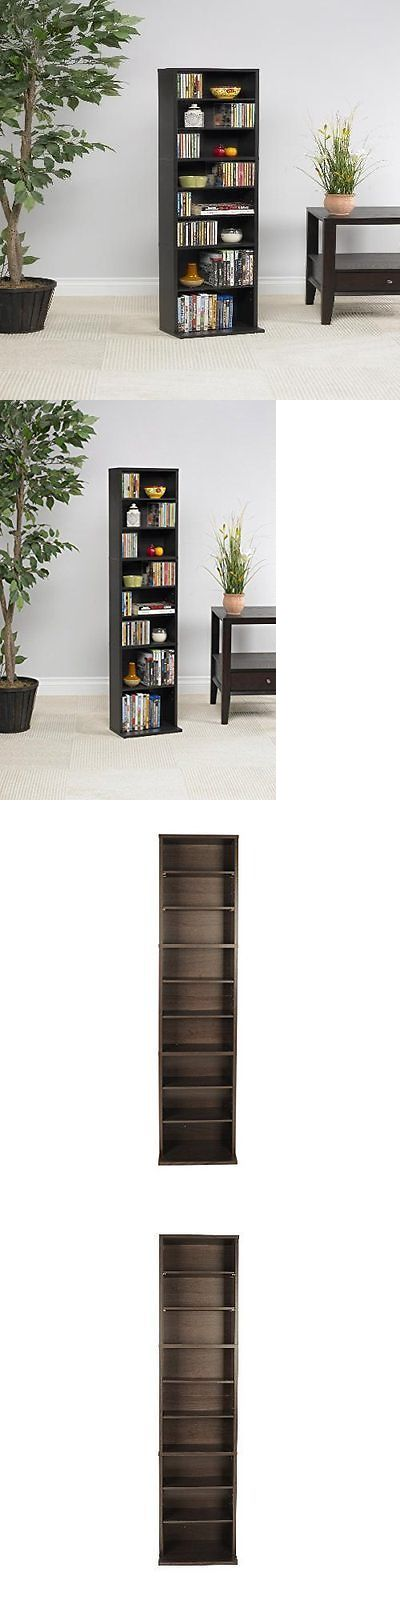 CD and Video Racks 22653: New Multimedia Storage Cd Organizer Dvd Tower Rack Cabinet Movie Shelf Stand -> BUY IT NOW ONLY: $37.43 on eBay!